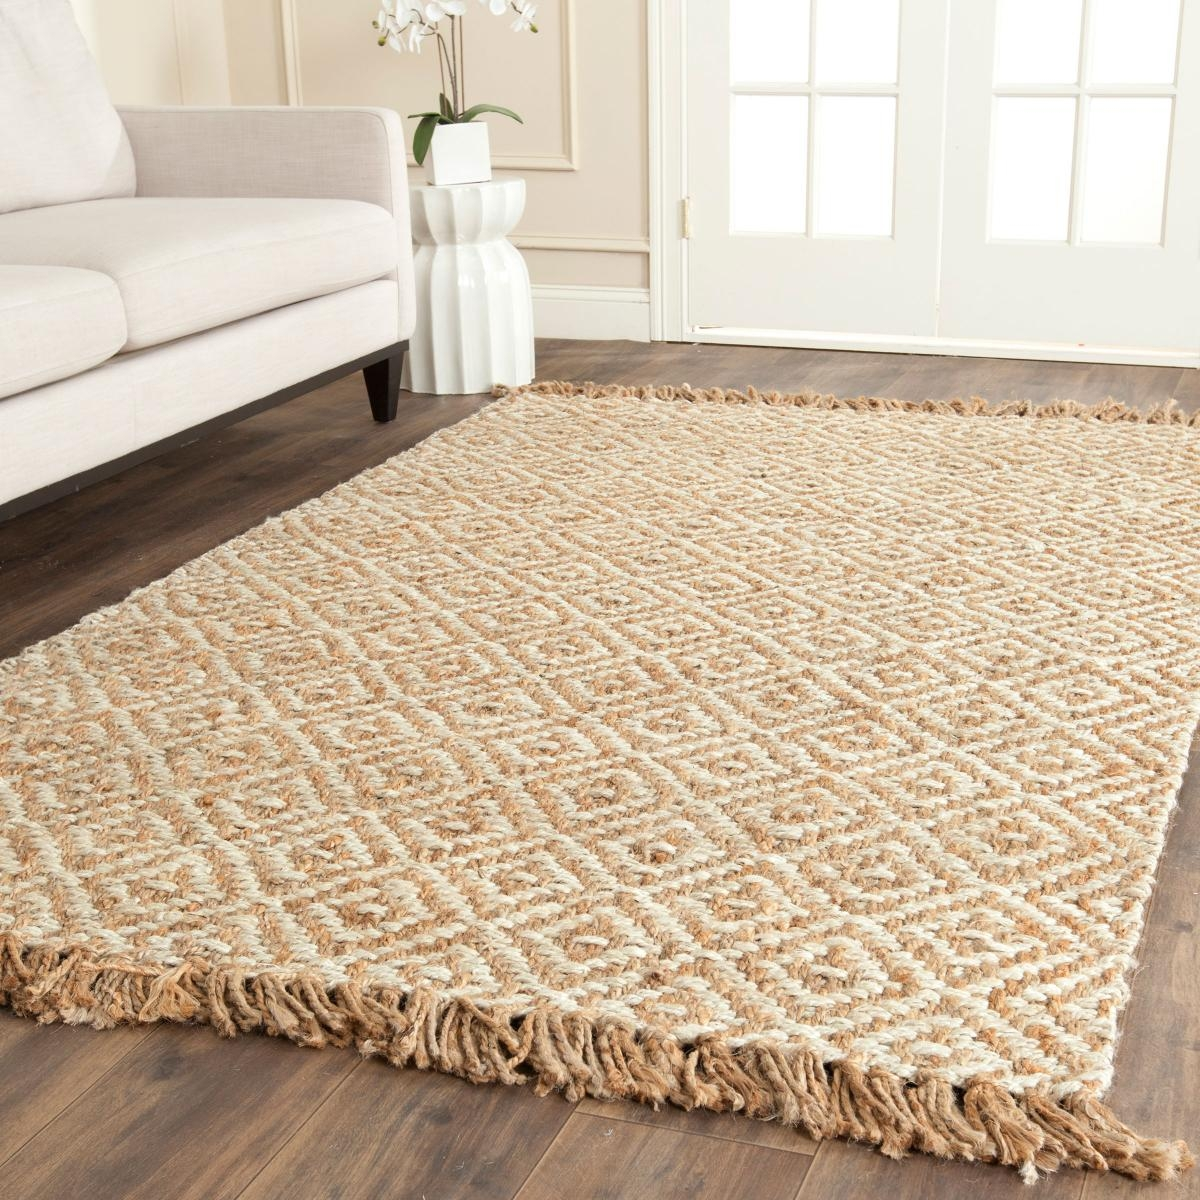 Rug Nf450a Natural Fiber Area Rugs Safavieh Pertaining To Natural Rugs (Photo 11 of 15)